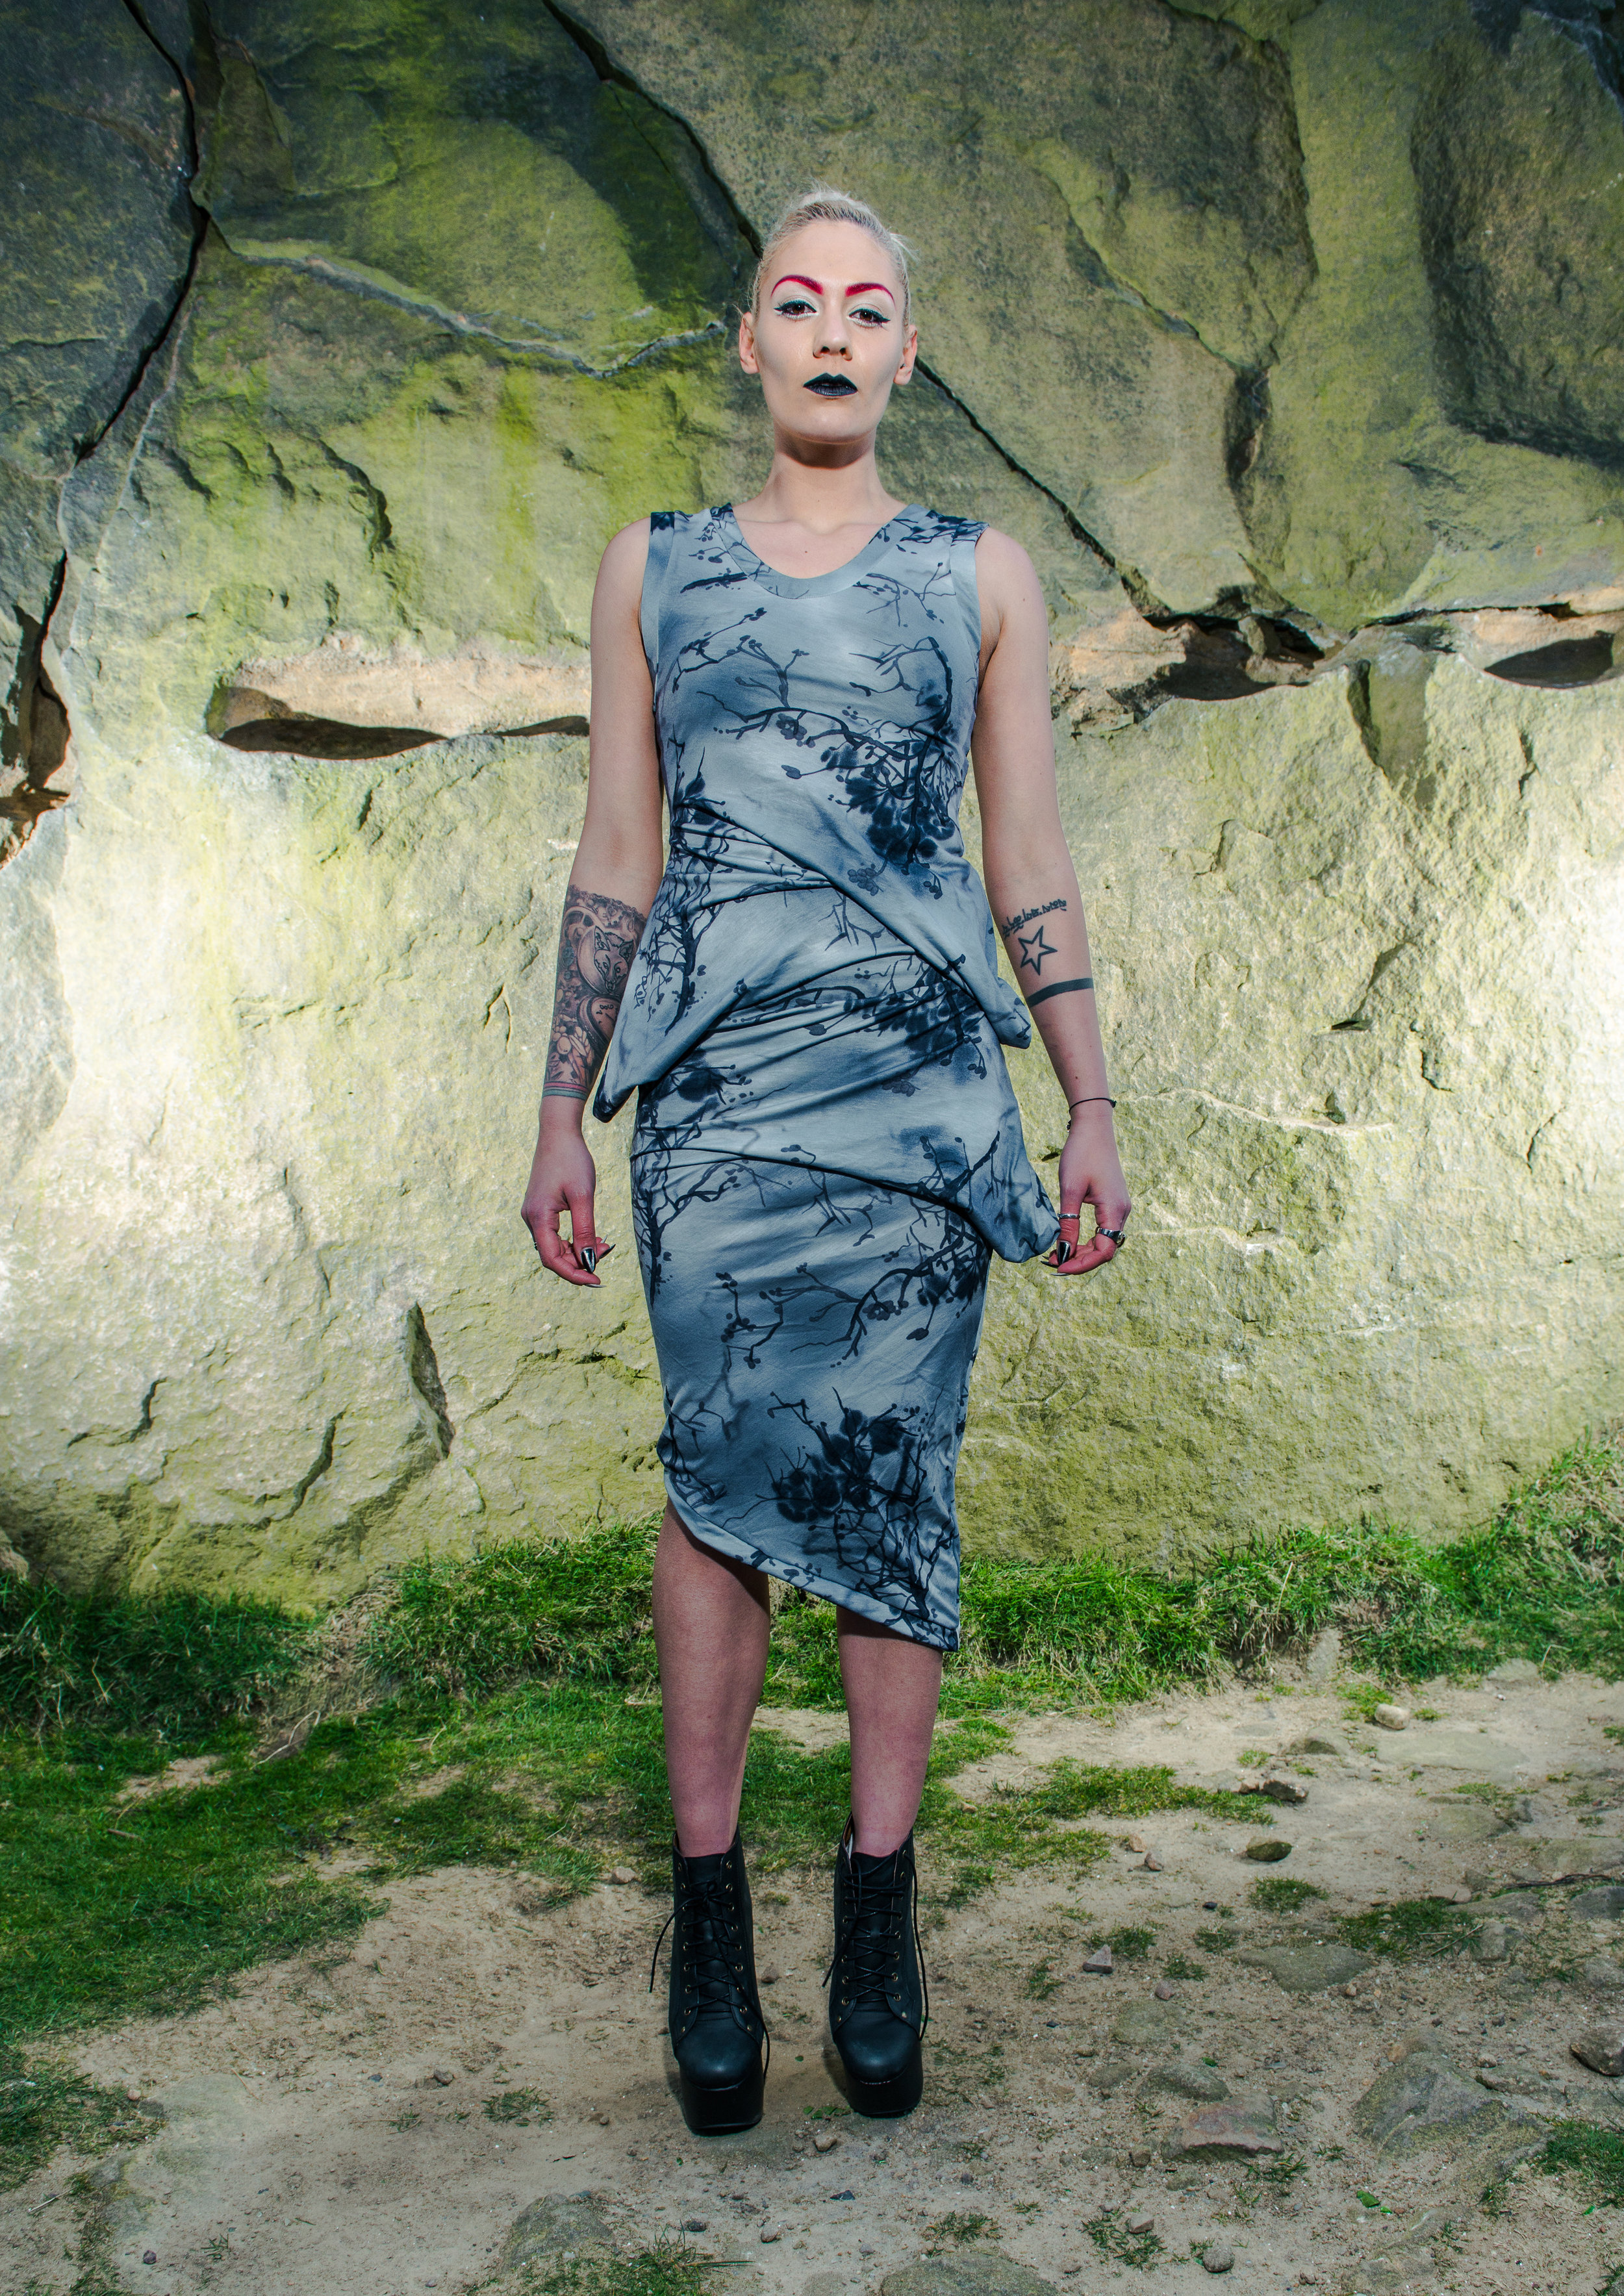 zaramia-ava-zaramiaava-leeds-fashion-designer-ethical-sustainable-tailored-minimalist-grey-print-fitted-point-dress-maxi-skirt-versatile-drape-cowl-styling-womenswear-models-photoshoot-location-27